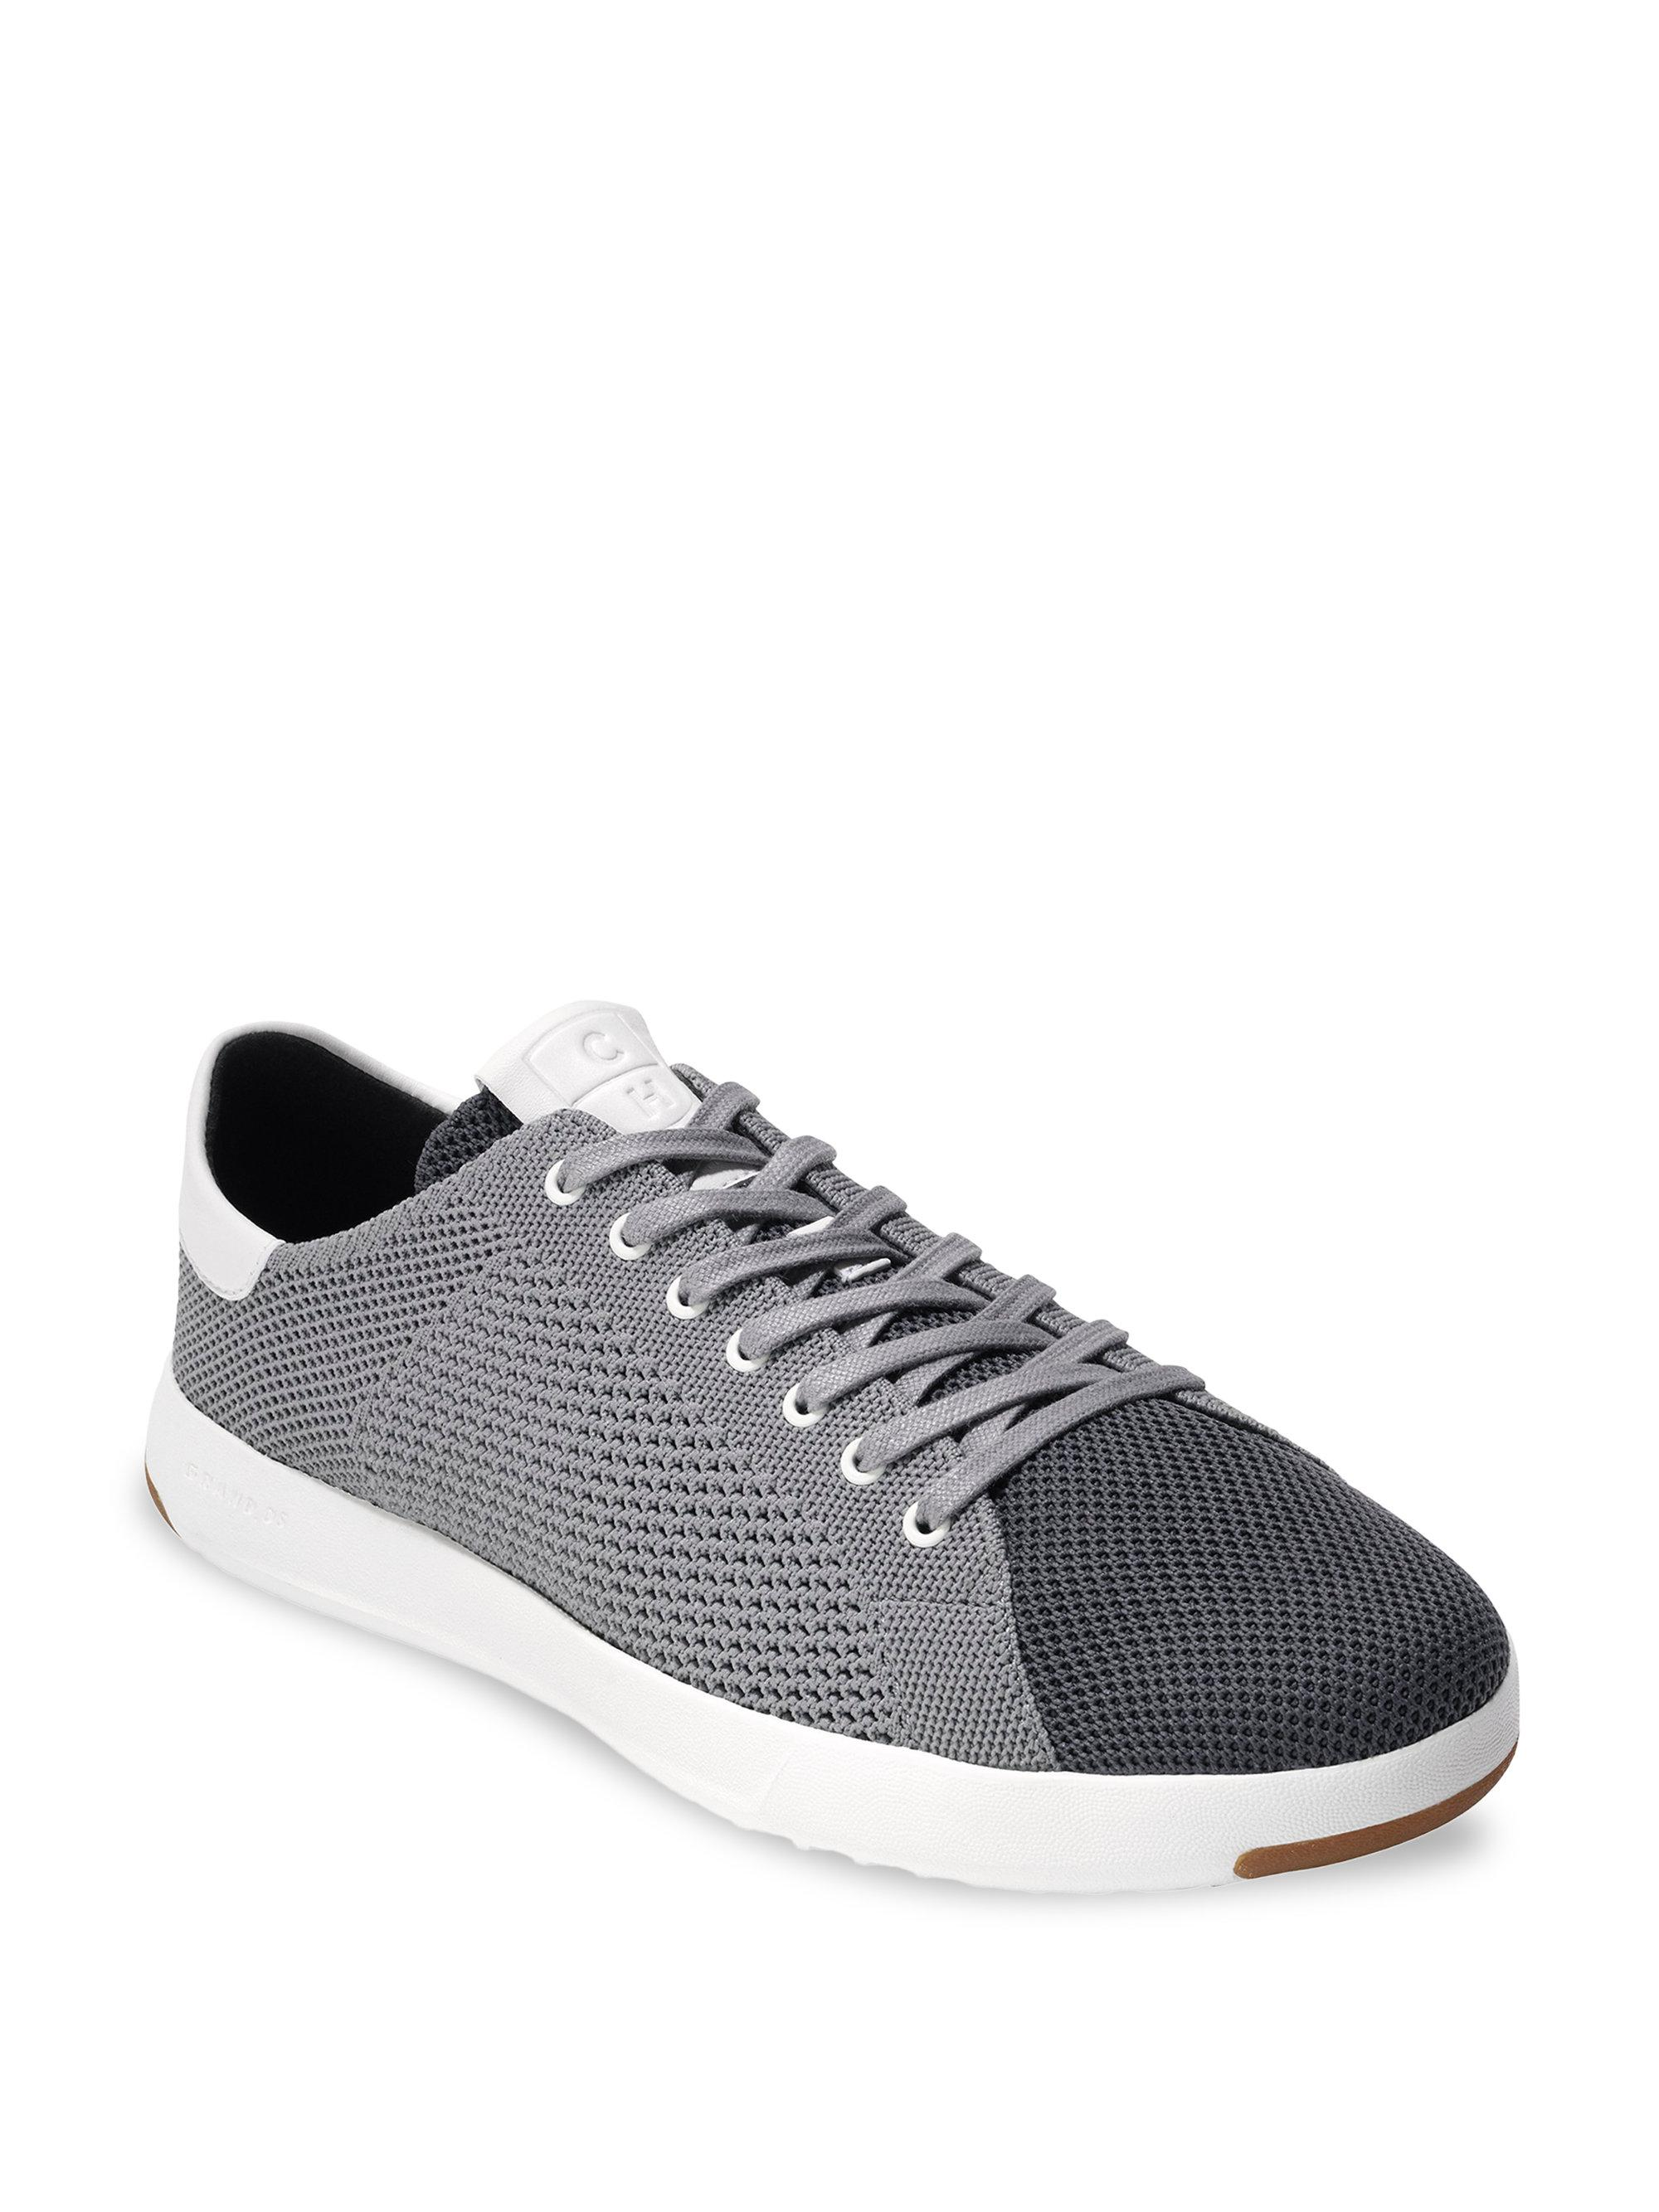 Cole Haan Grandpro Stitch Magnet Sneakers